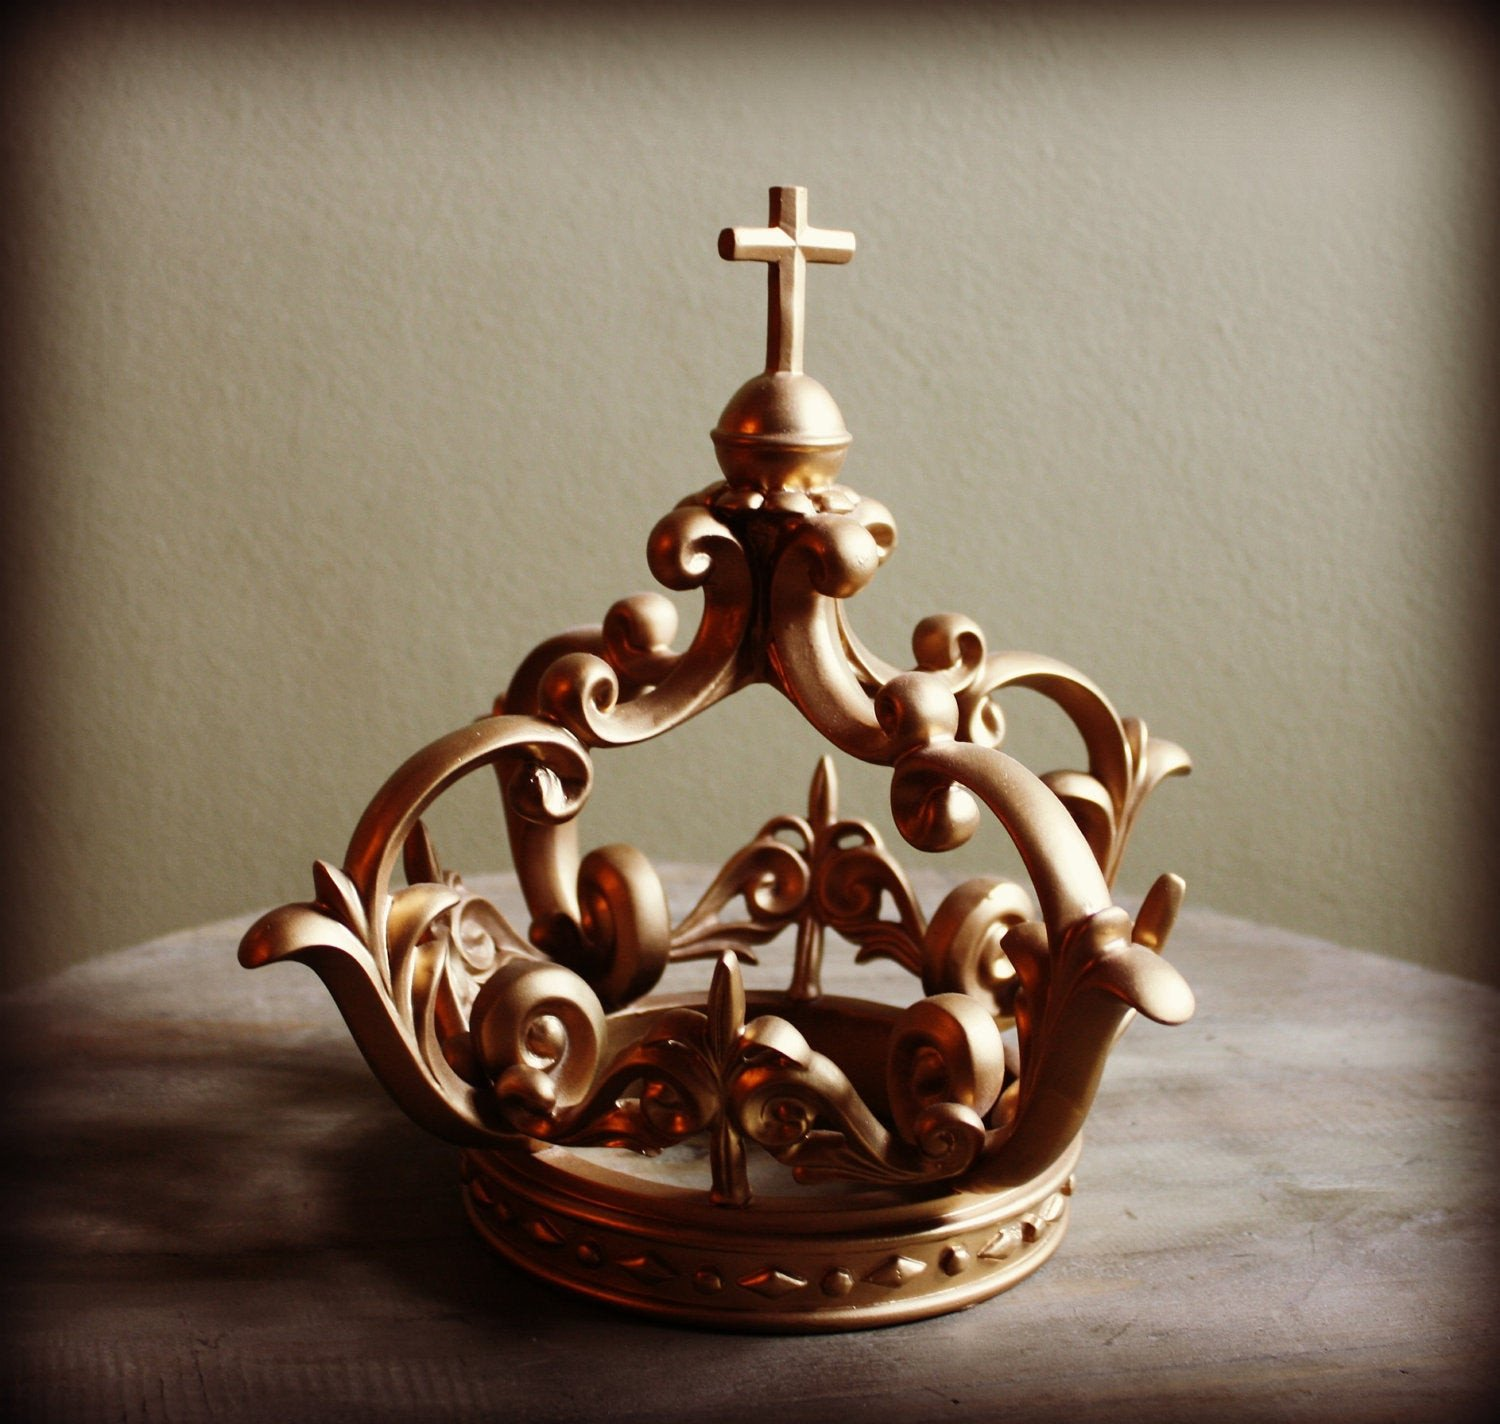 Decorative Crowns for Home Decor Beautiful Gold Crown Home Decor Shabby French Decor by theprincesprops